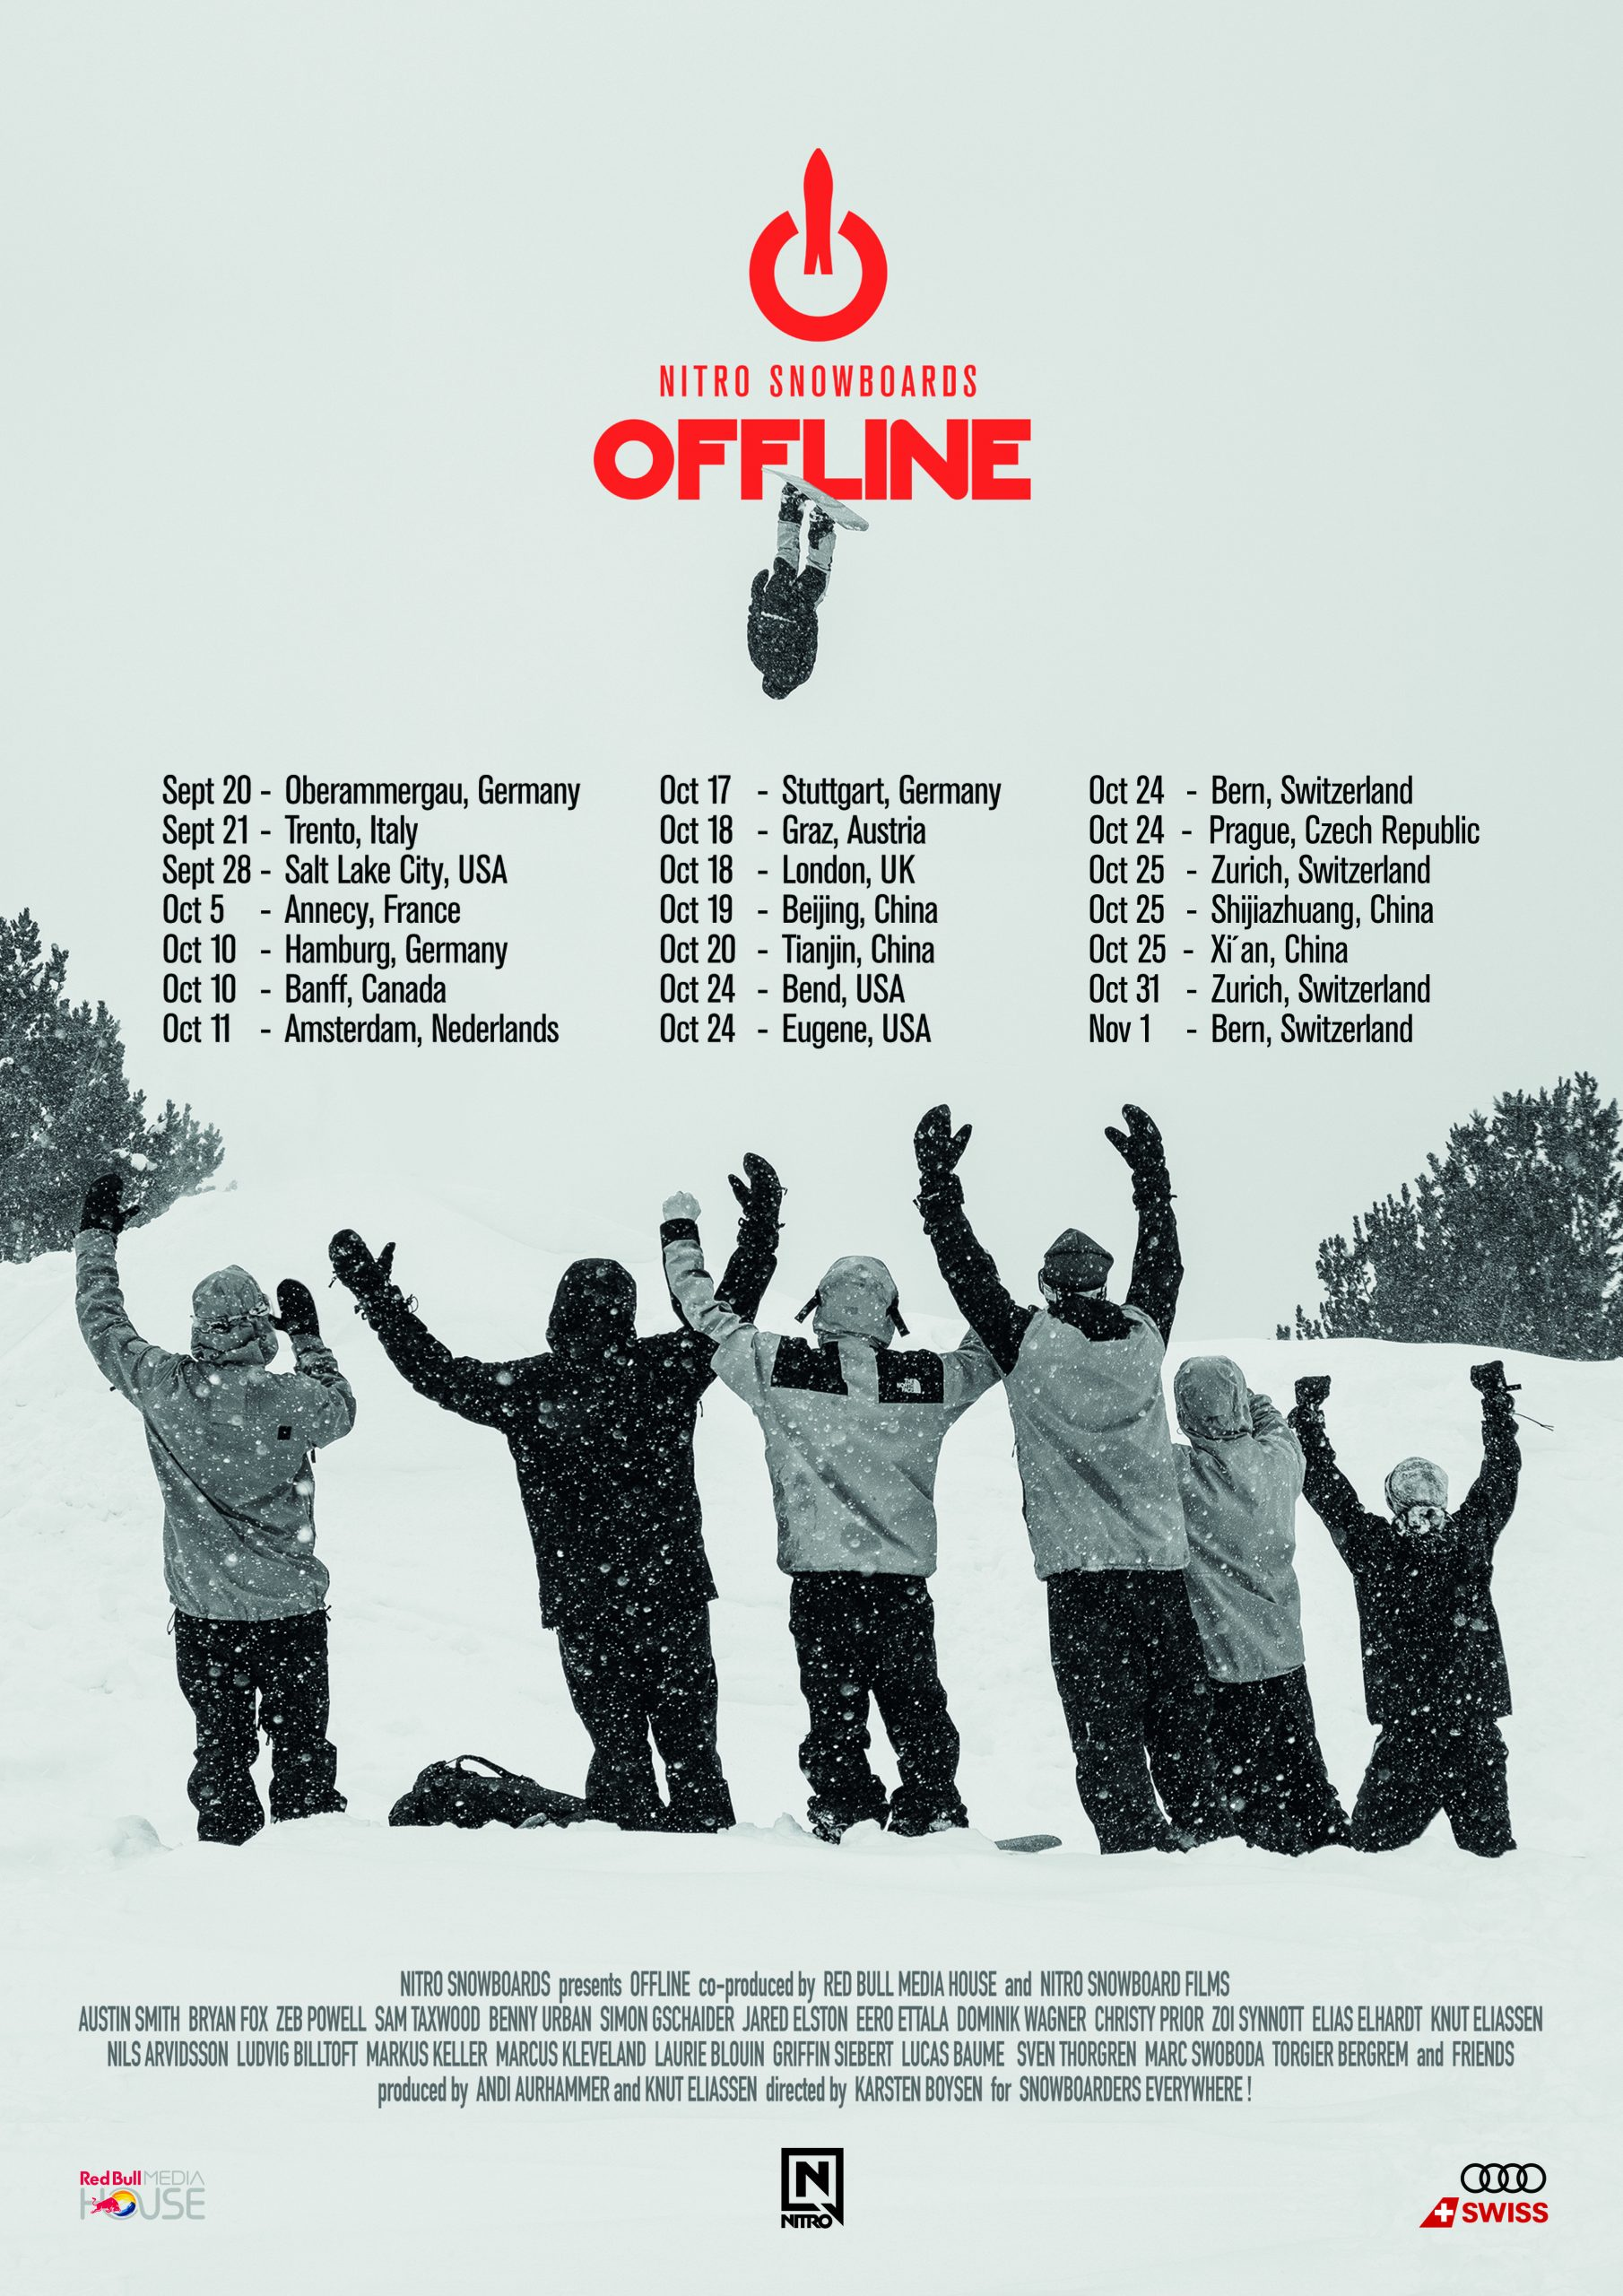 Offline Nitro Snowboards Movie Red Bull Interview Snowboarding